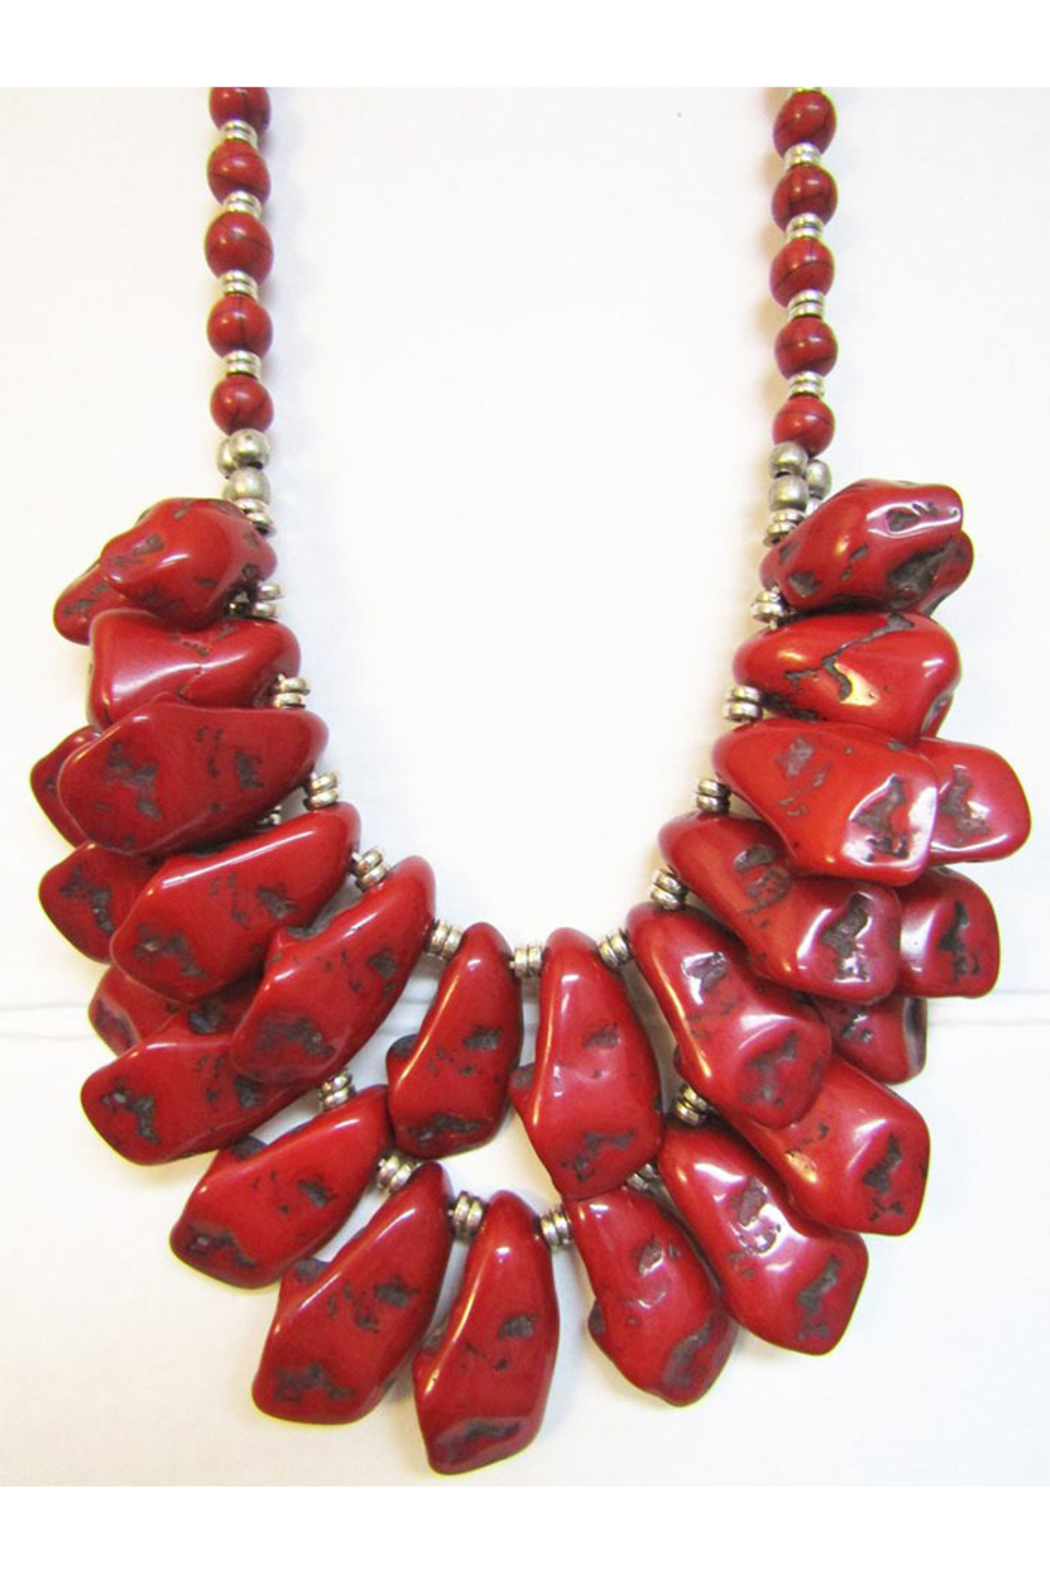 KIMBALS Tibetan Bohemian Style 2-Strand Beaded Necklace In Silver/Red - Main Image